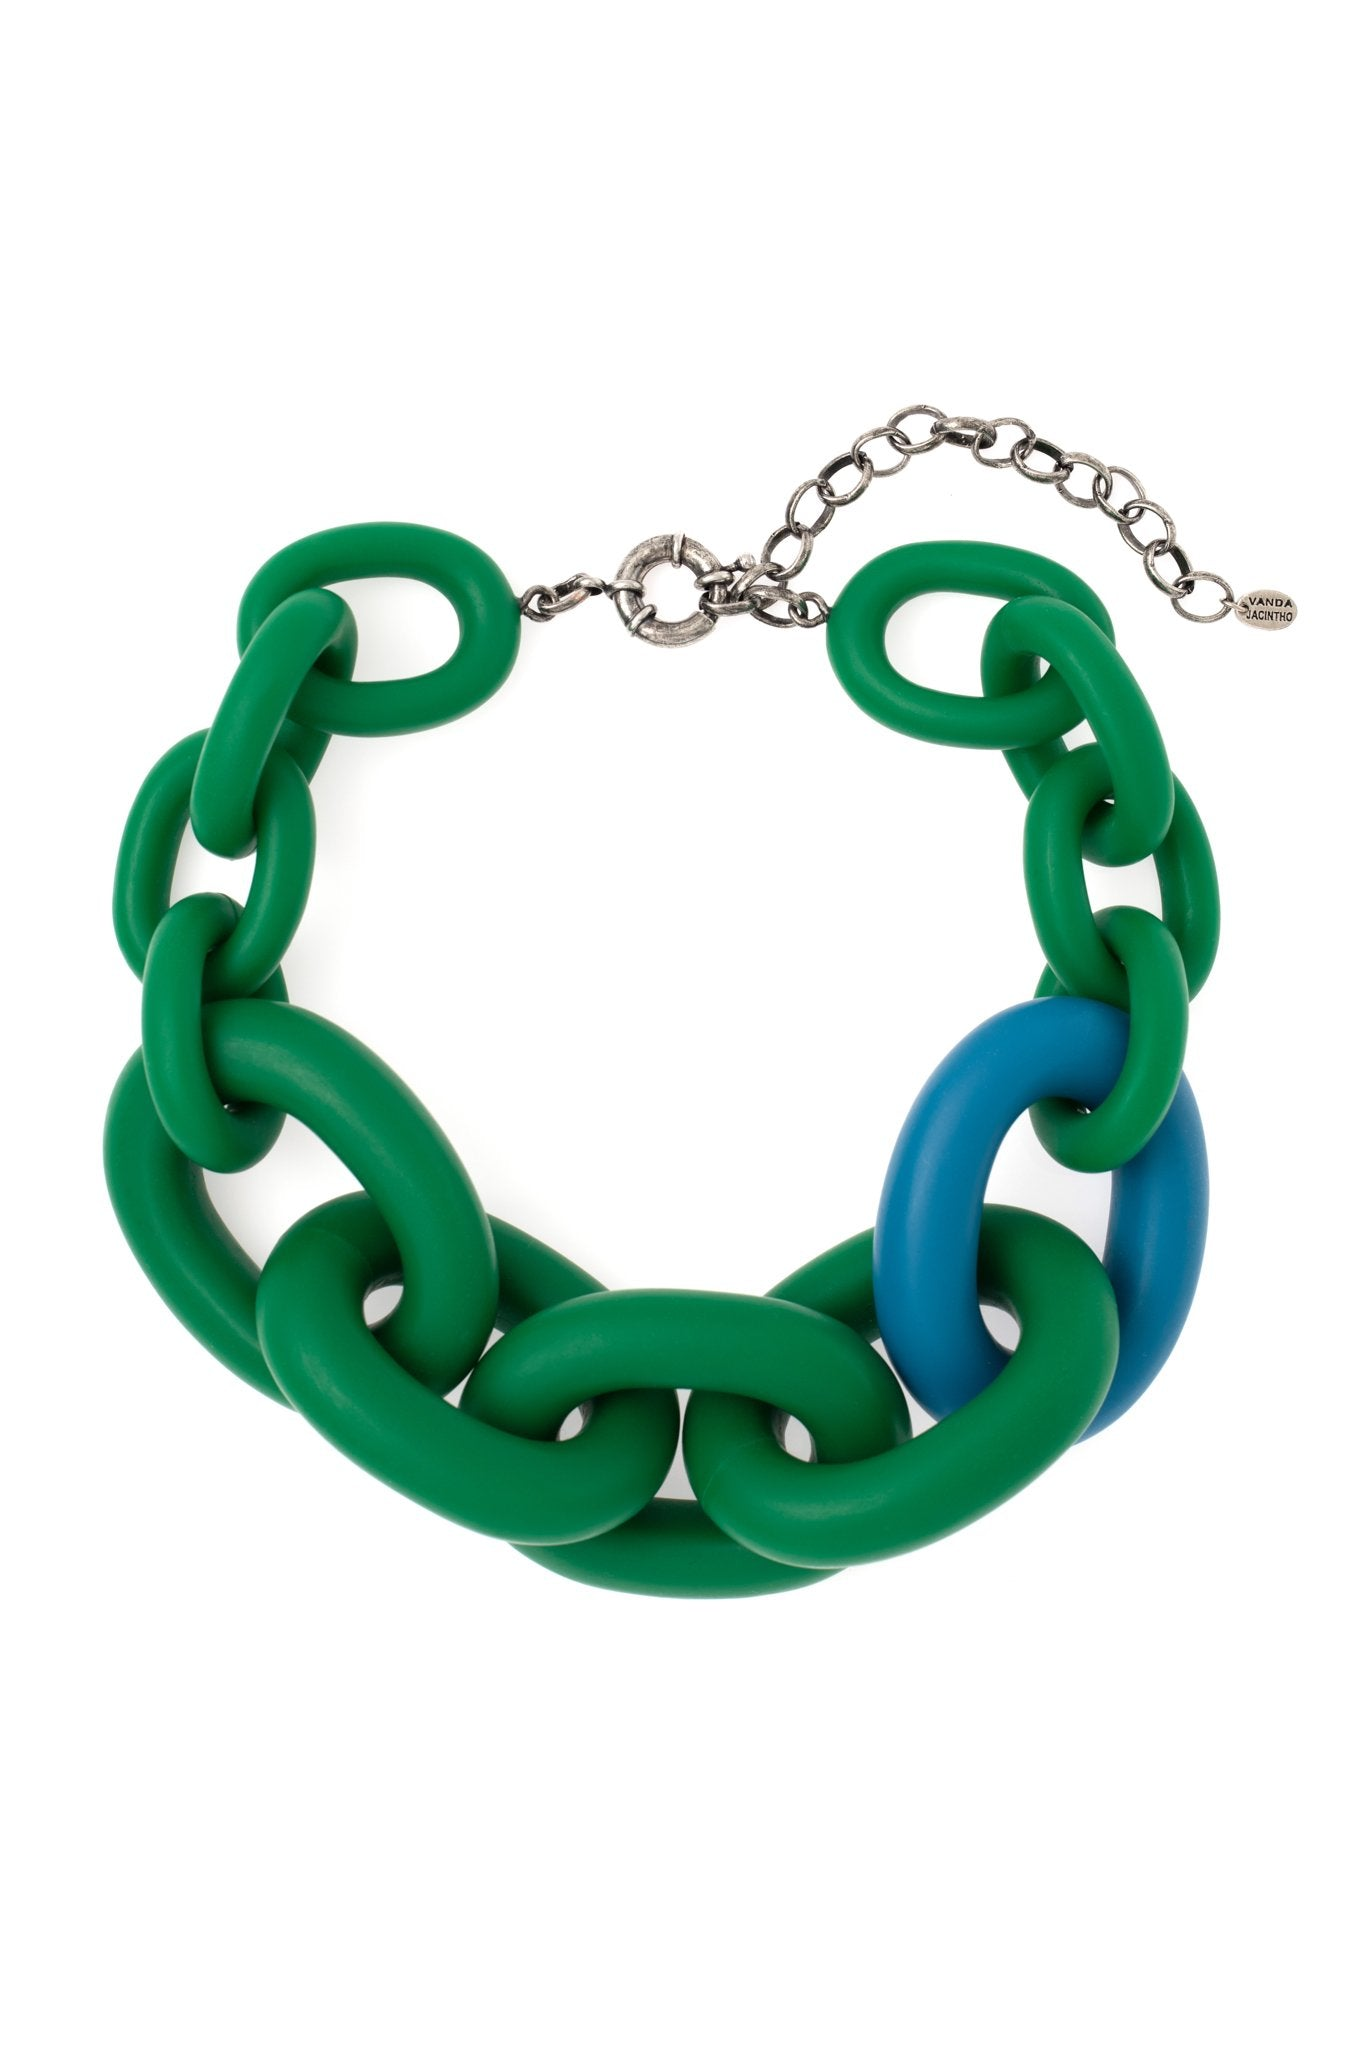 GREEN AND BLUE CHAIN CHOKER